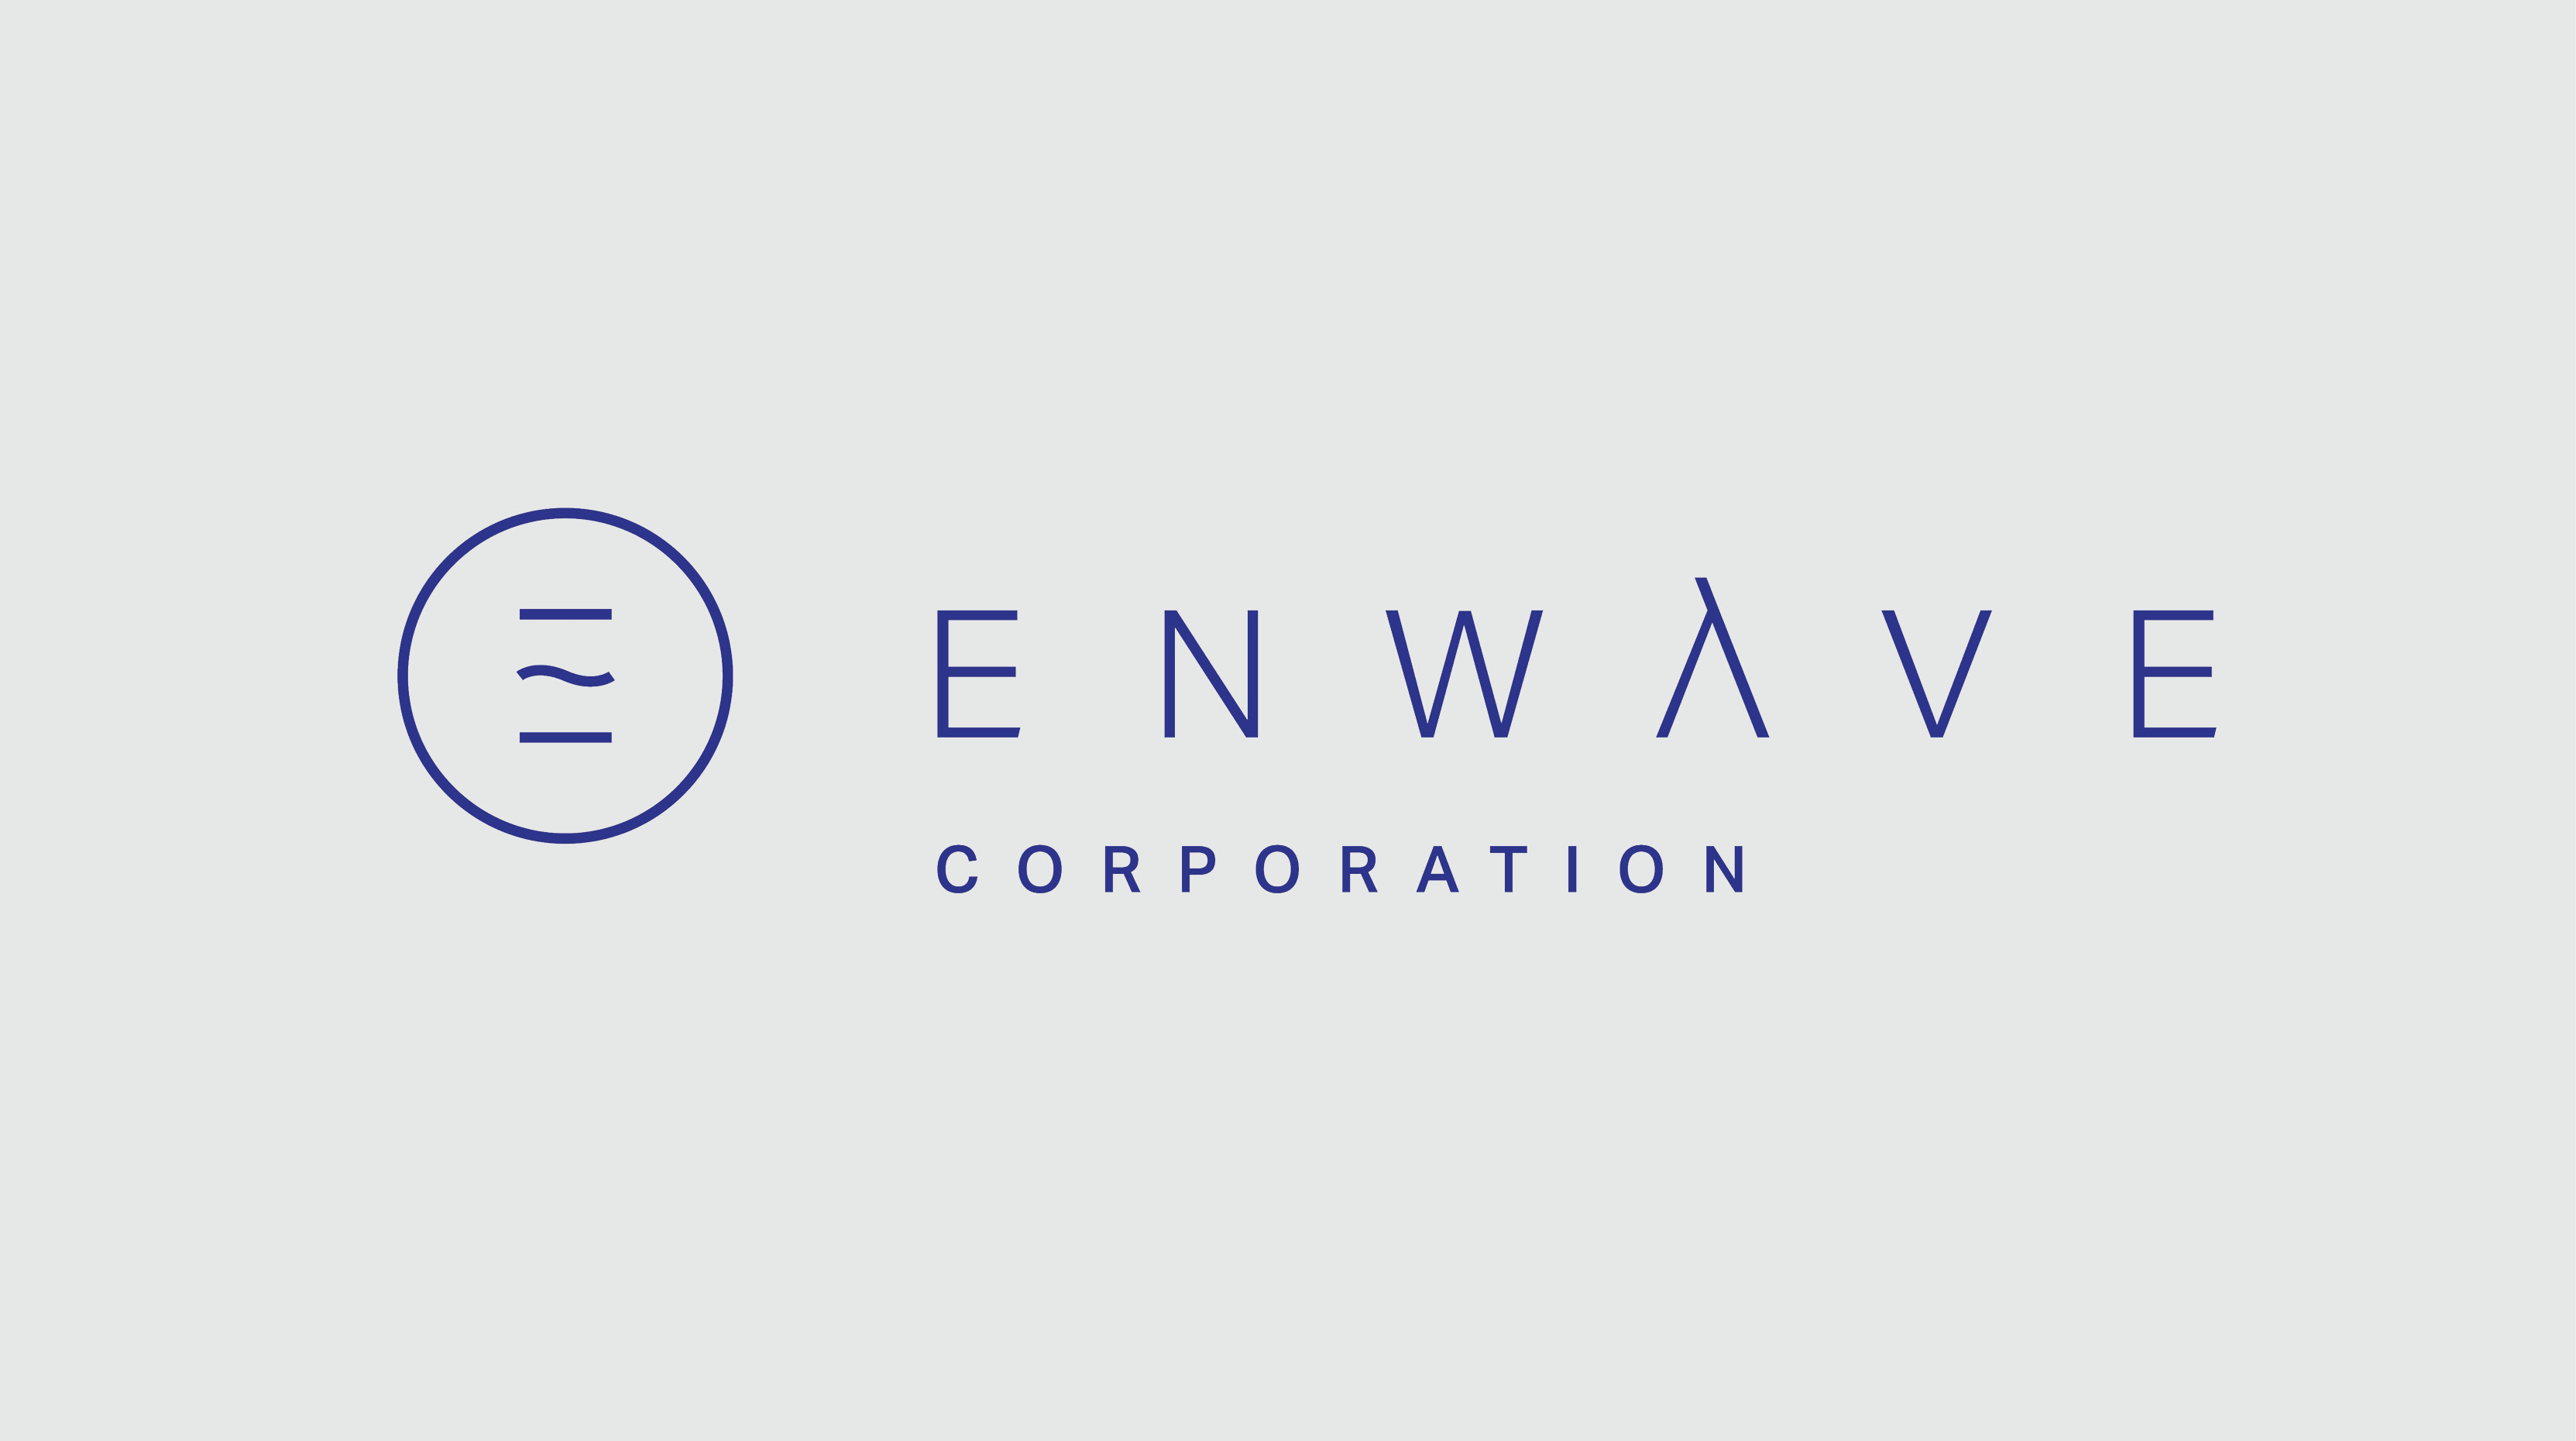 EnWave Signs Royalty-Bearing Commercial License and Receives Deposit for 70kW of REV™ Machinery from NuWave Foods for the Production of Shelf-Stable Baked Goods